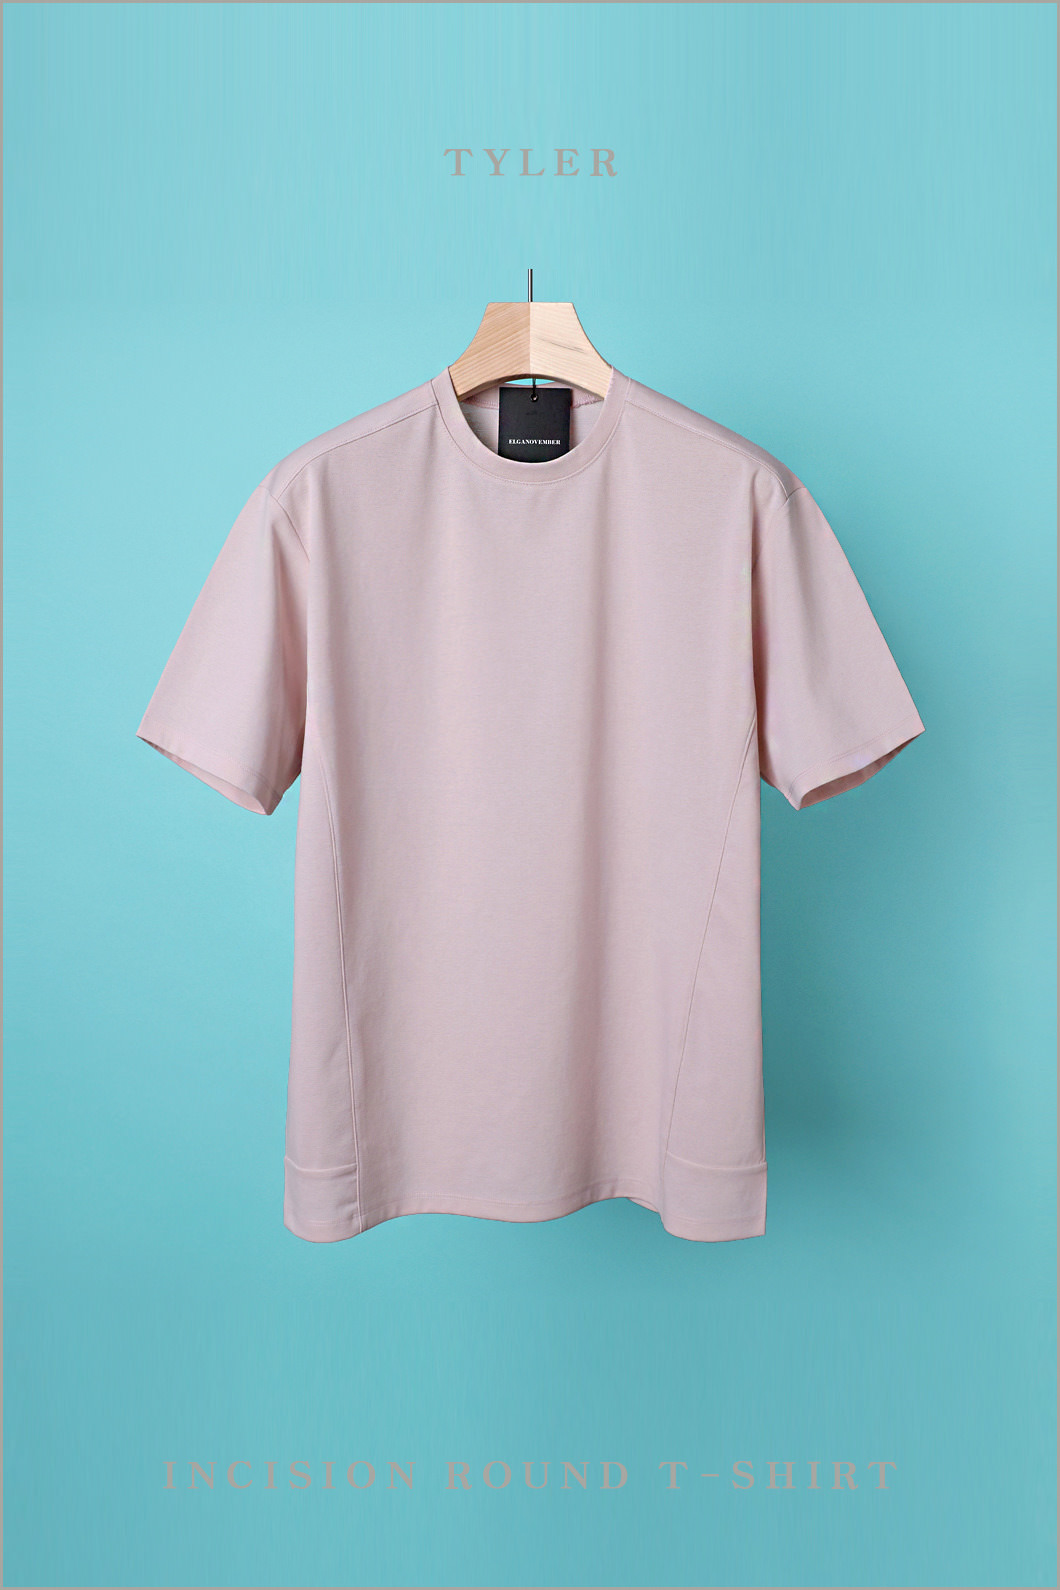 TYLER INCISION ROUND T-SHIRT-6COLOR